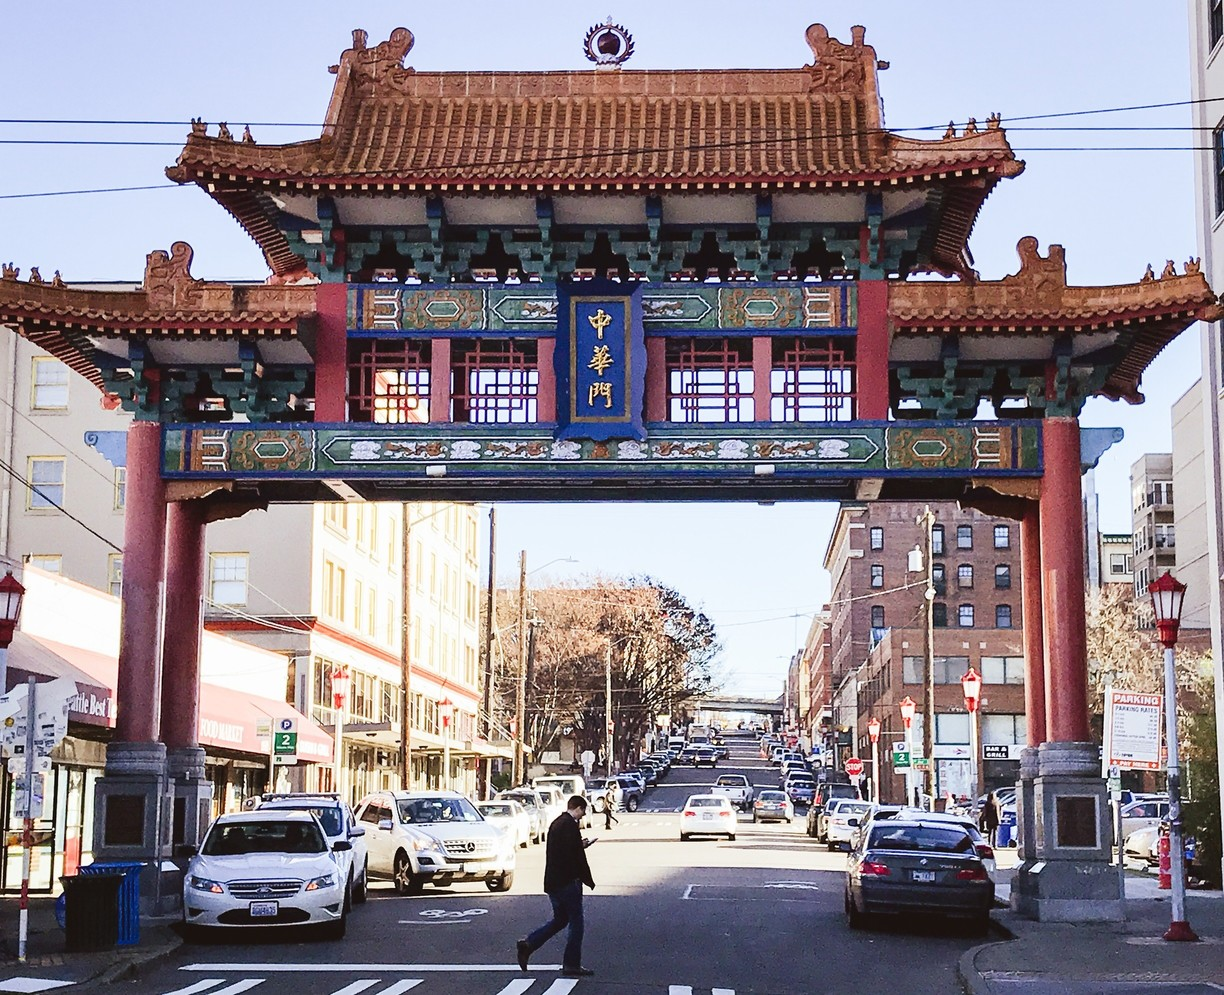 Chinatown-International District Things to do in Seattle